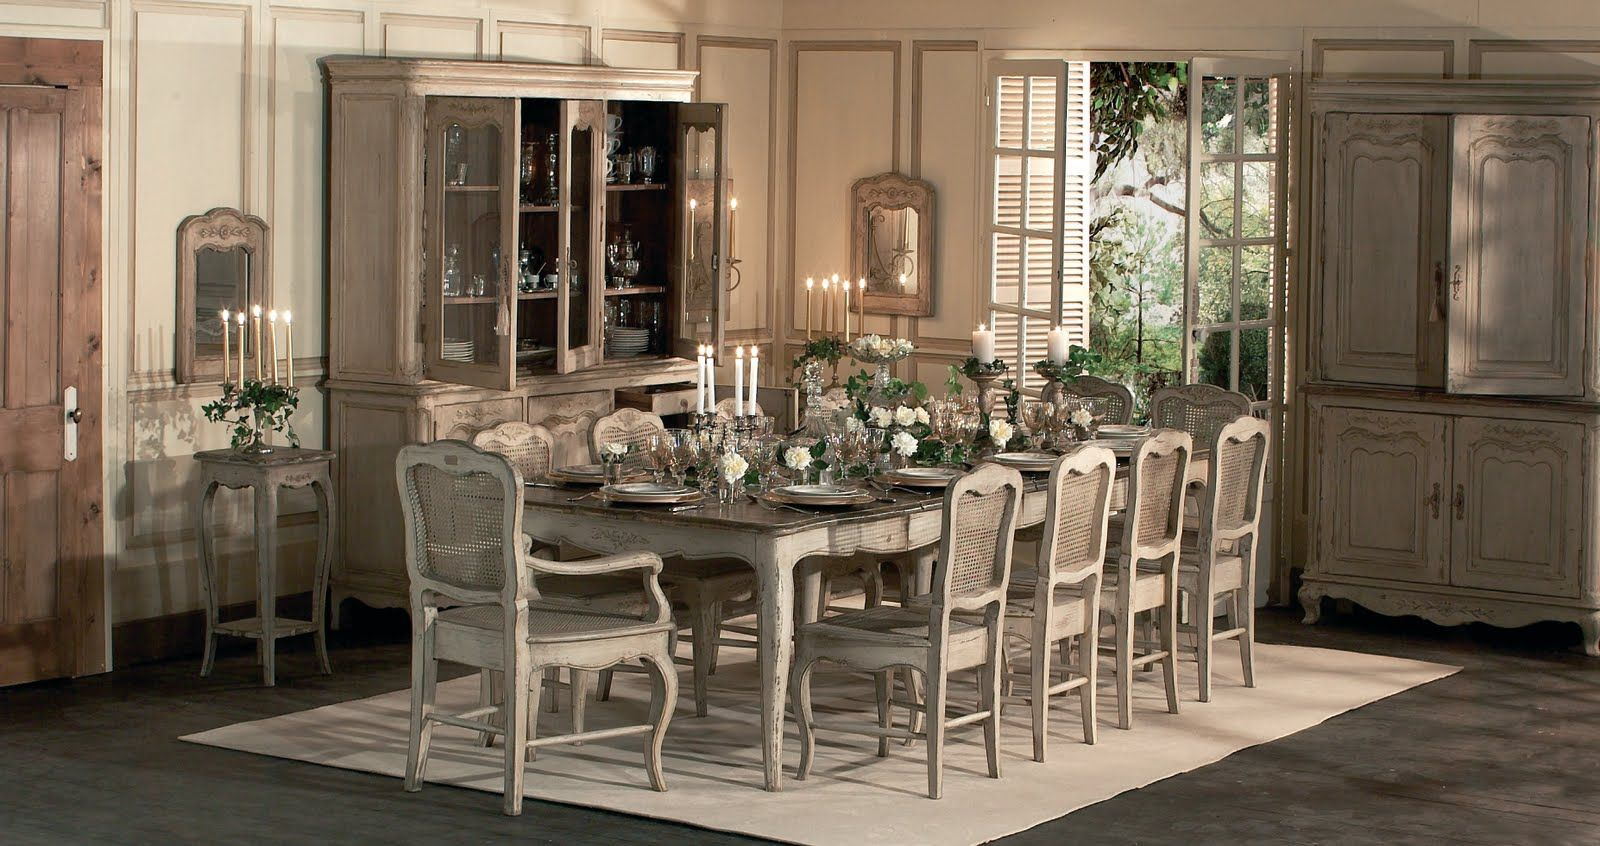 Captivating country dining room designs to inspire you for Modern formal dining room sets